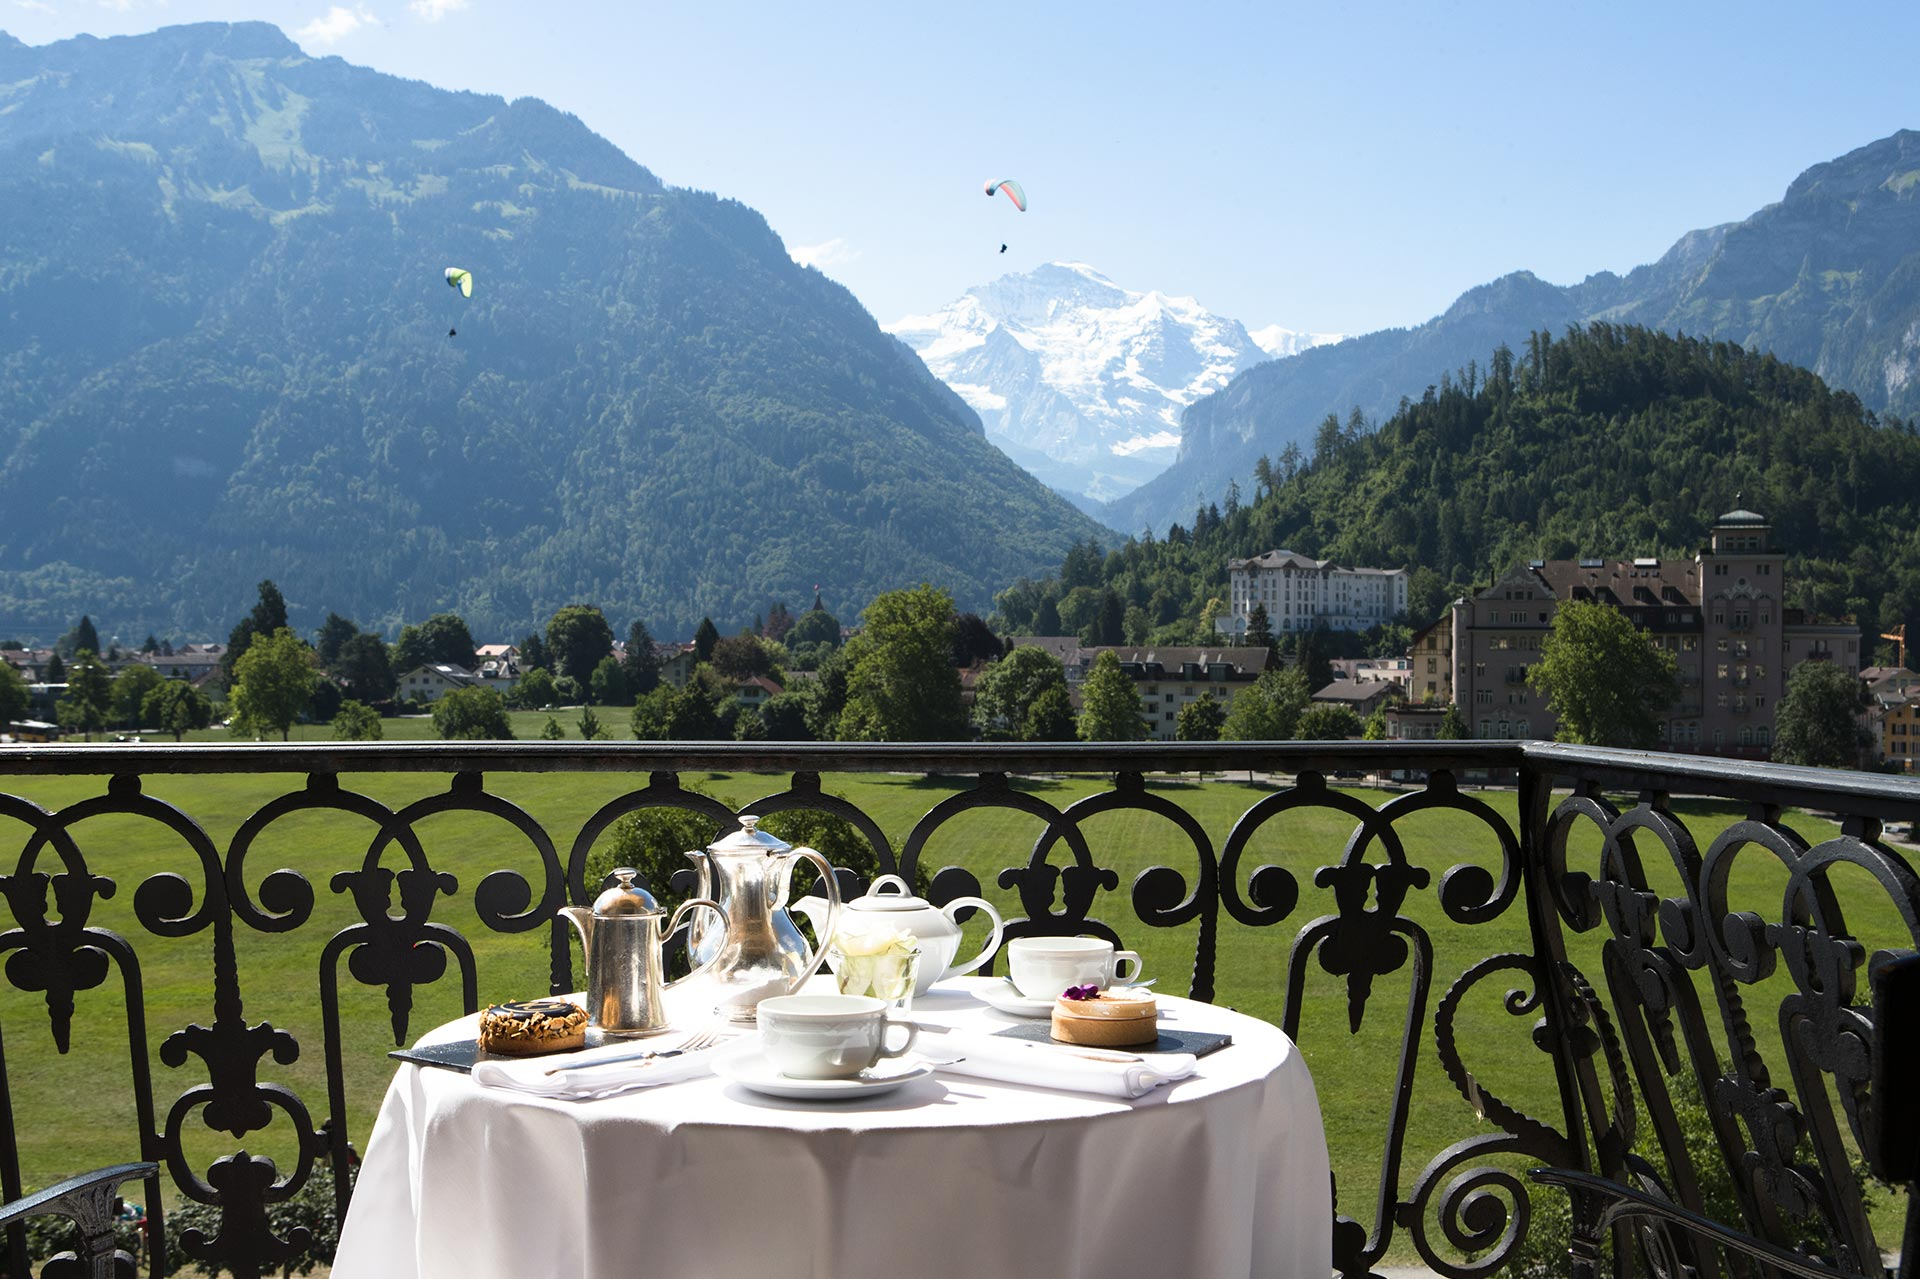 Switzerland Incentive Travel – So Many Options